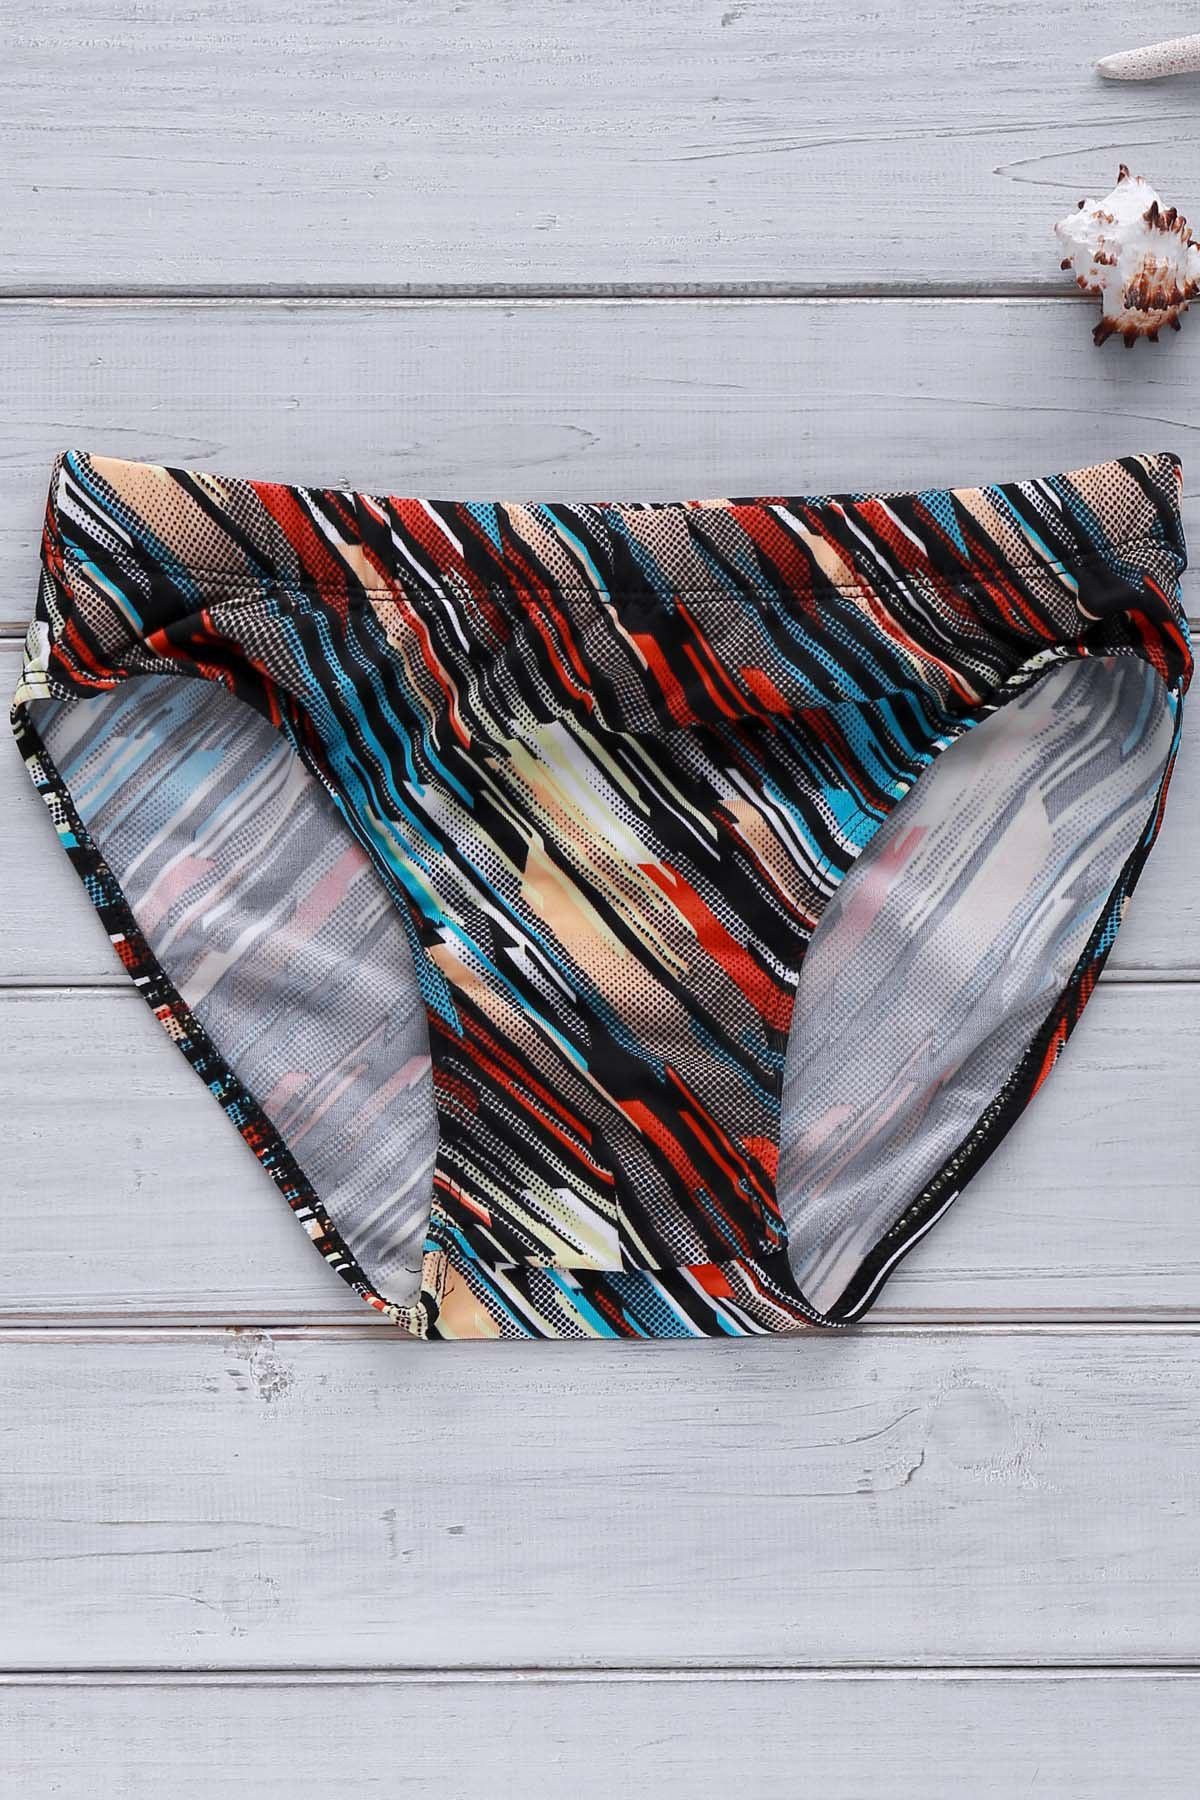 Men's Inclined Colorful Stripe Elastic Swimming Trunks